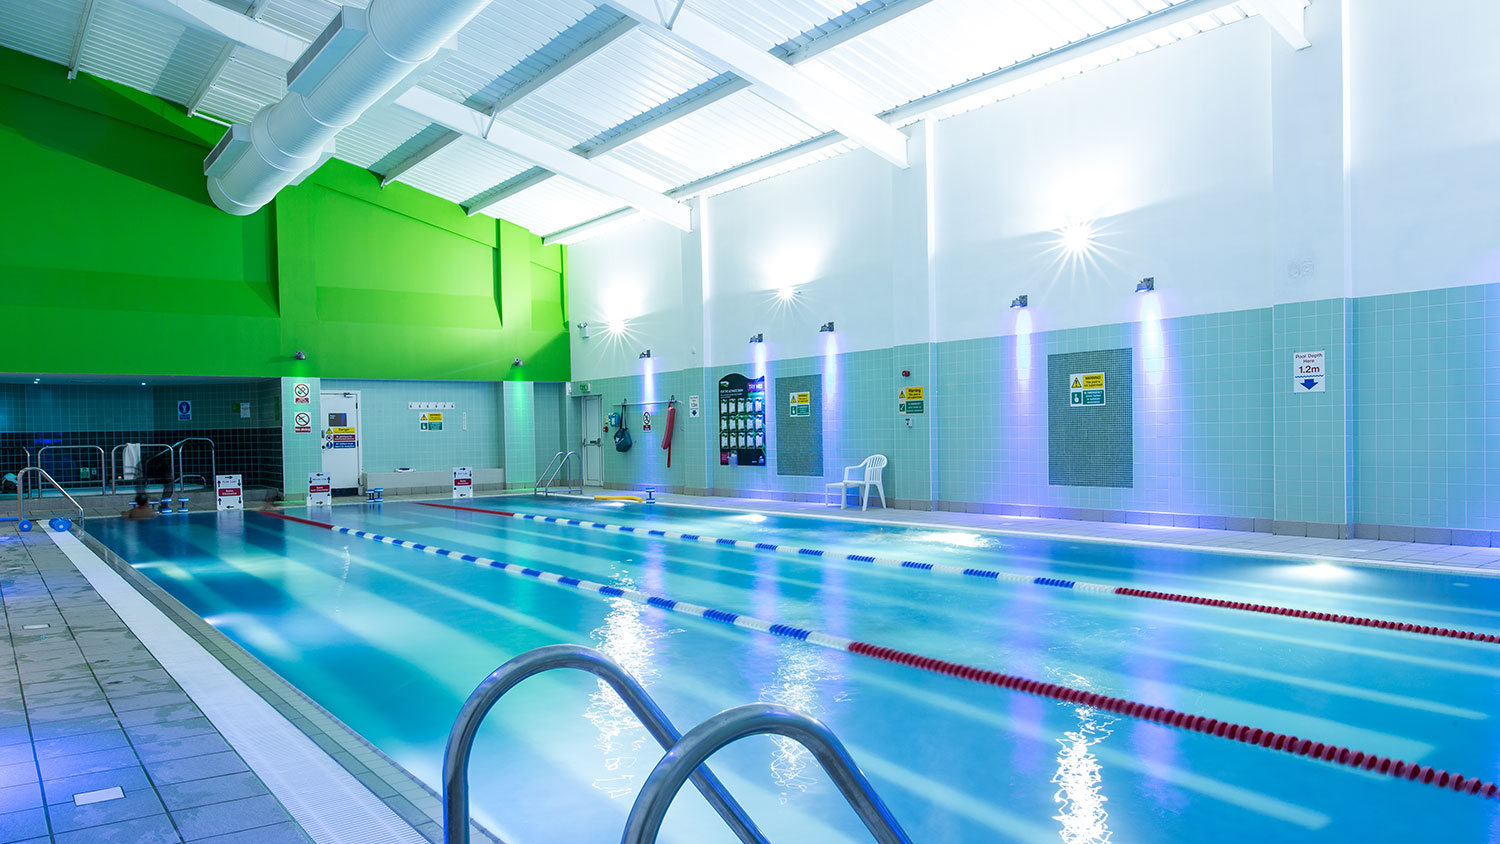 Brondesbury Park gym swimming pool